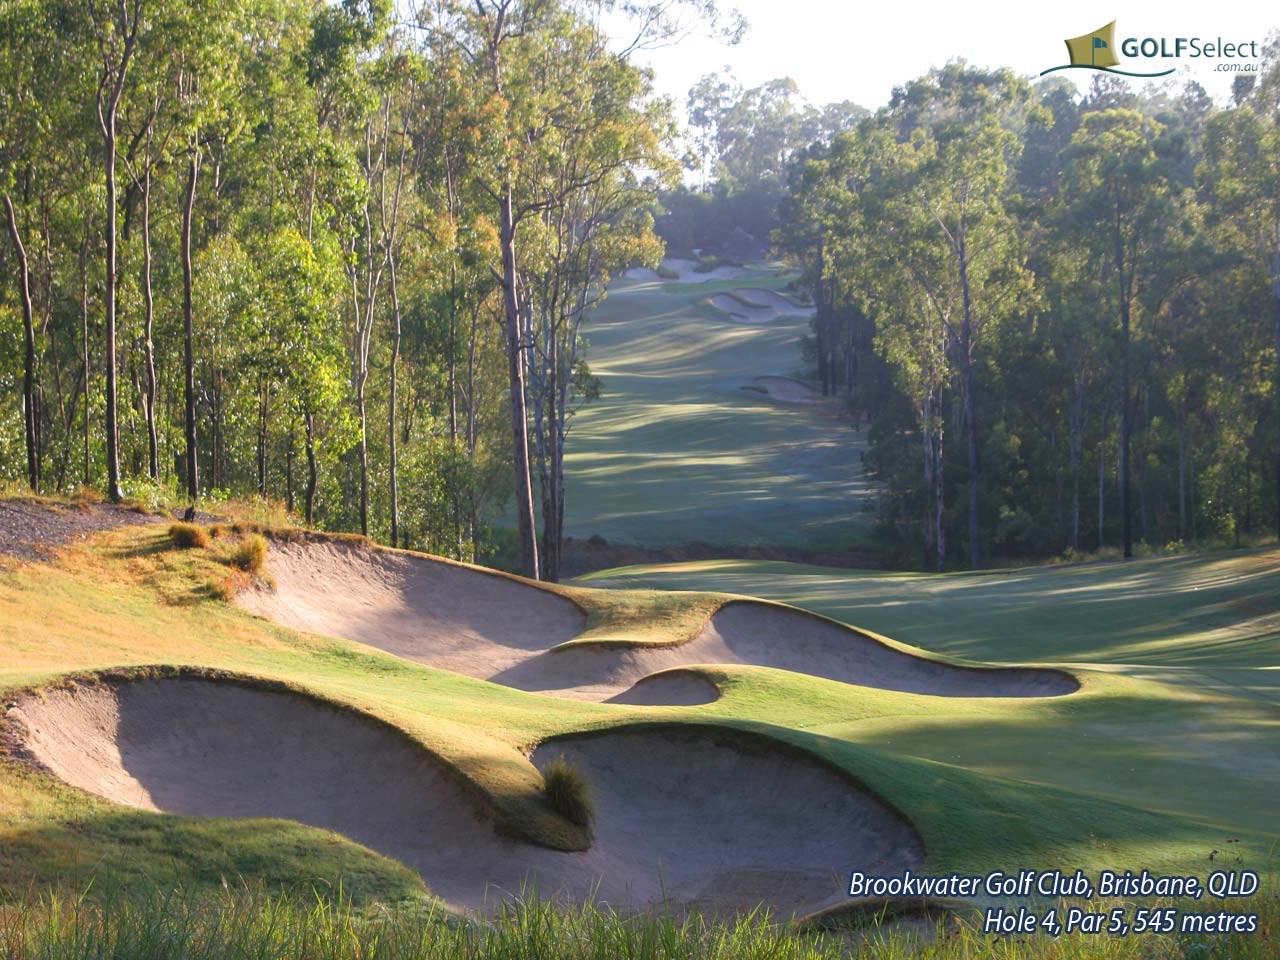 Brookwater Golf & Country Club Hole 4, Par 5, 545 metres